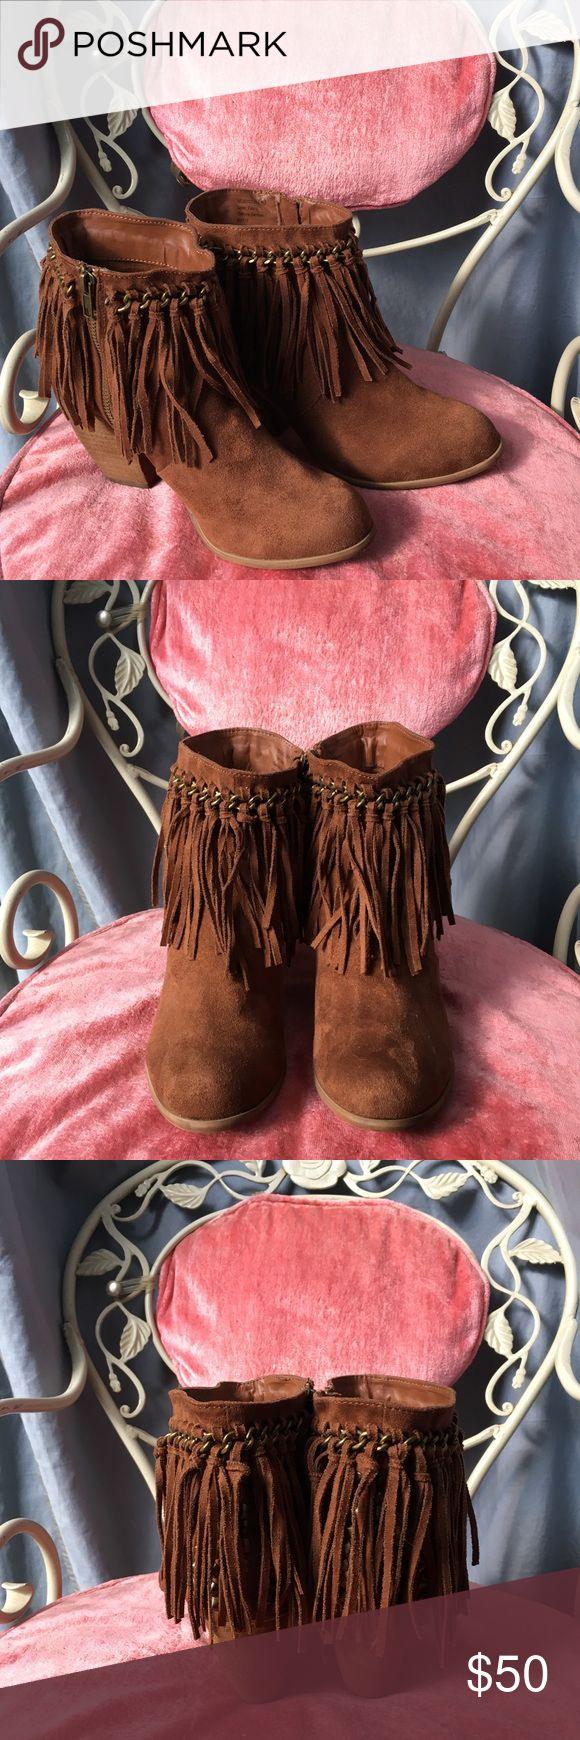 🐴 NOT RATED FRINGE BOOTS BRAND NEW, NEVER WORN Not Rated boots. These are perfect for a night out or casual days. Has chain detailing that has fringe attached and peekaboo studs in the back. Super cute for fall and winter season! Not Rated Shoes Ankle Boots & Booties